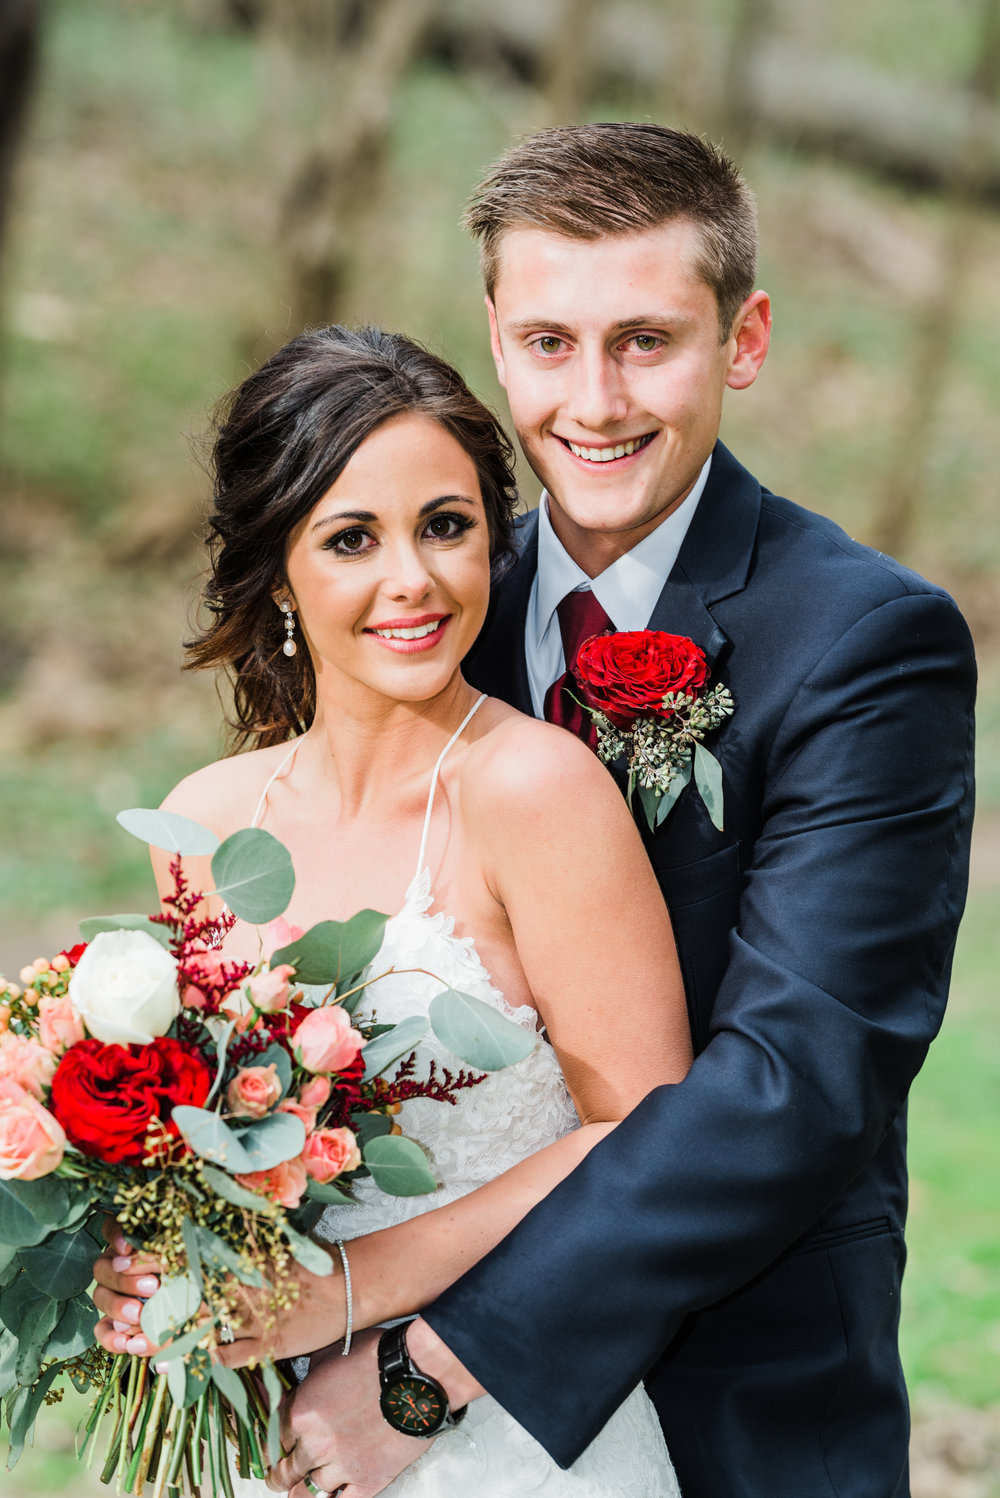 frazierweddinghappyoutphotography-9693.jpg